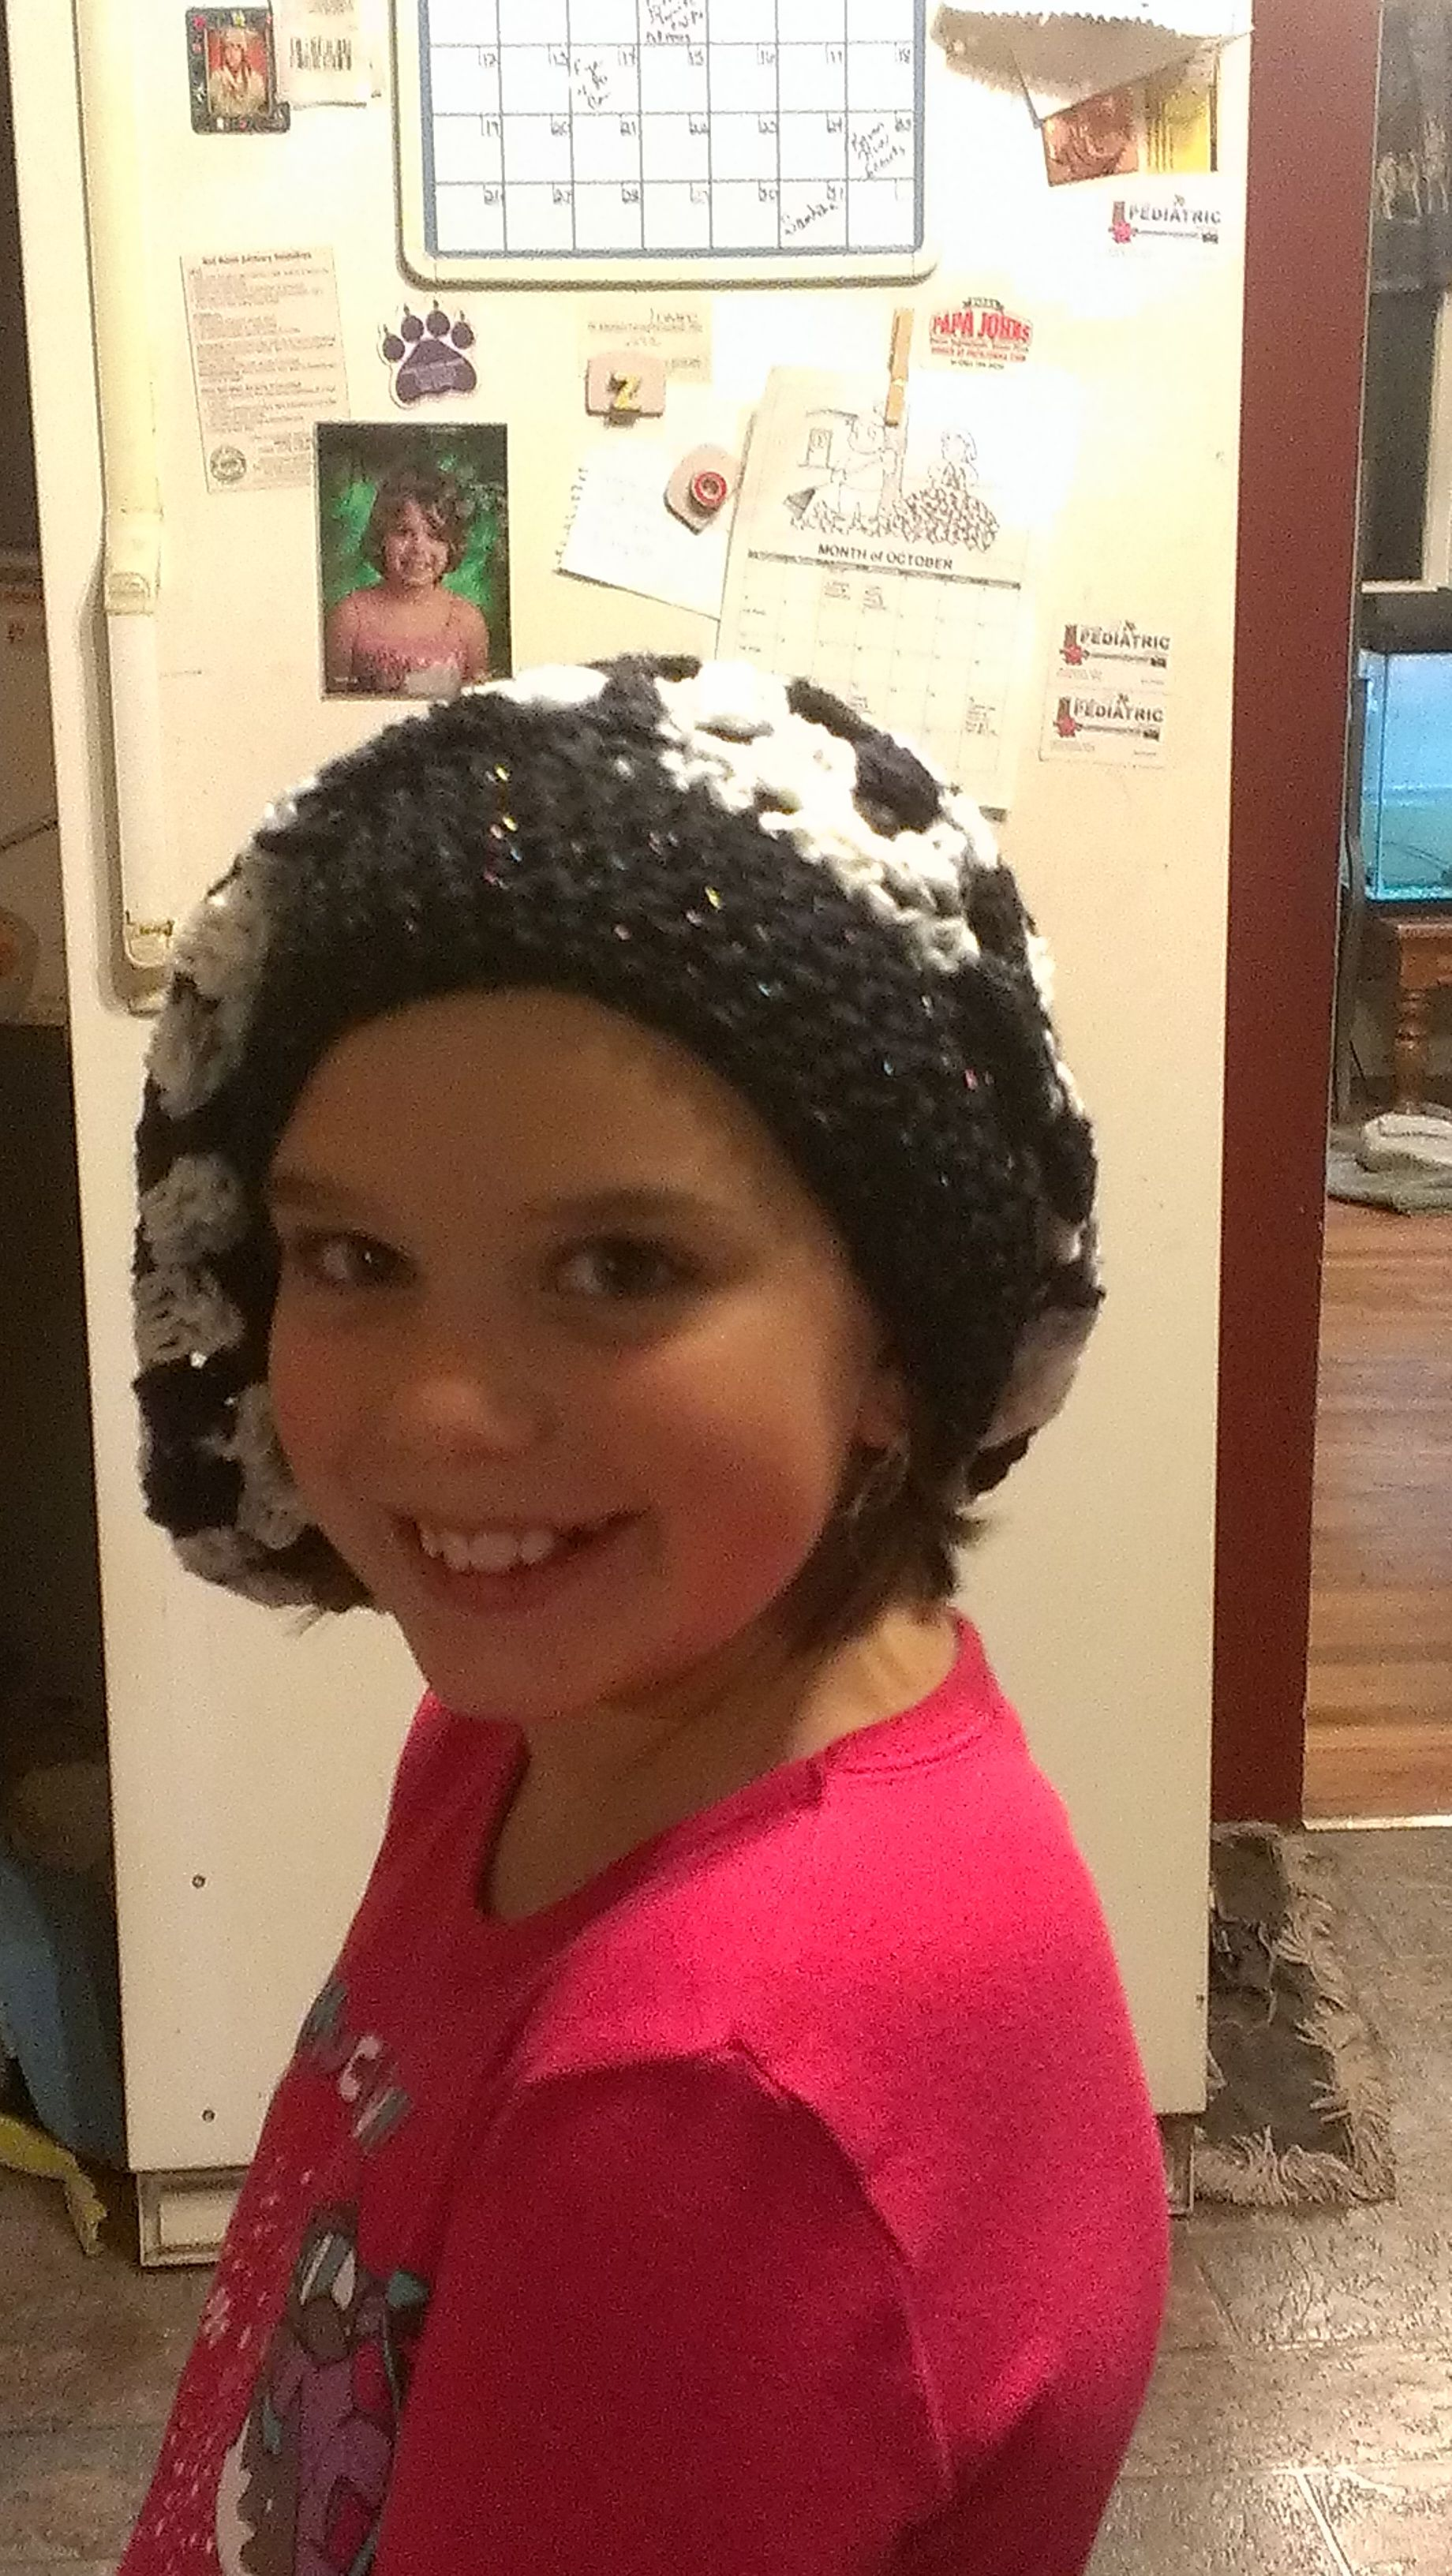 Child's Slouchy hat/beret - black & white variegated with a solid black band - $12